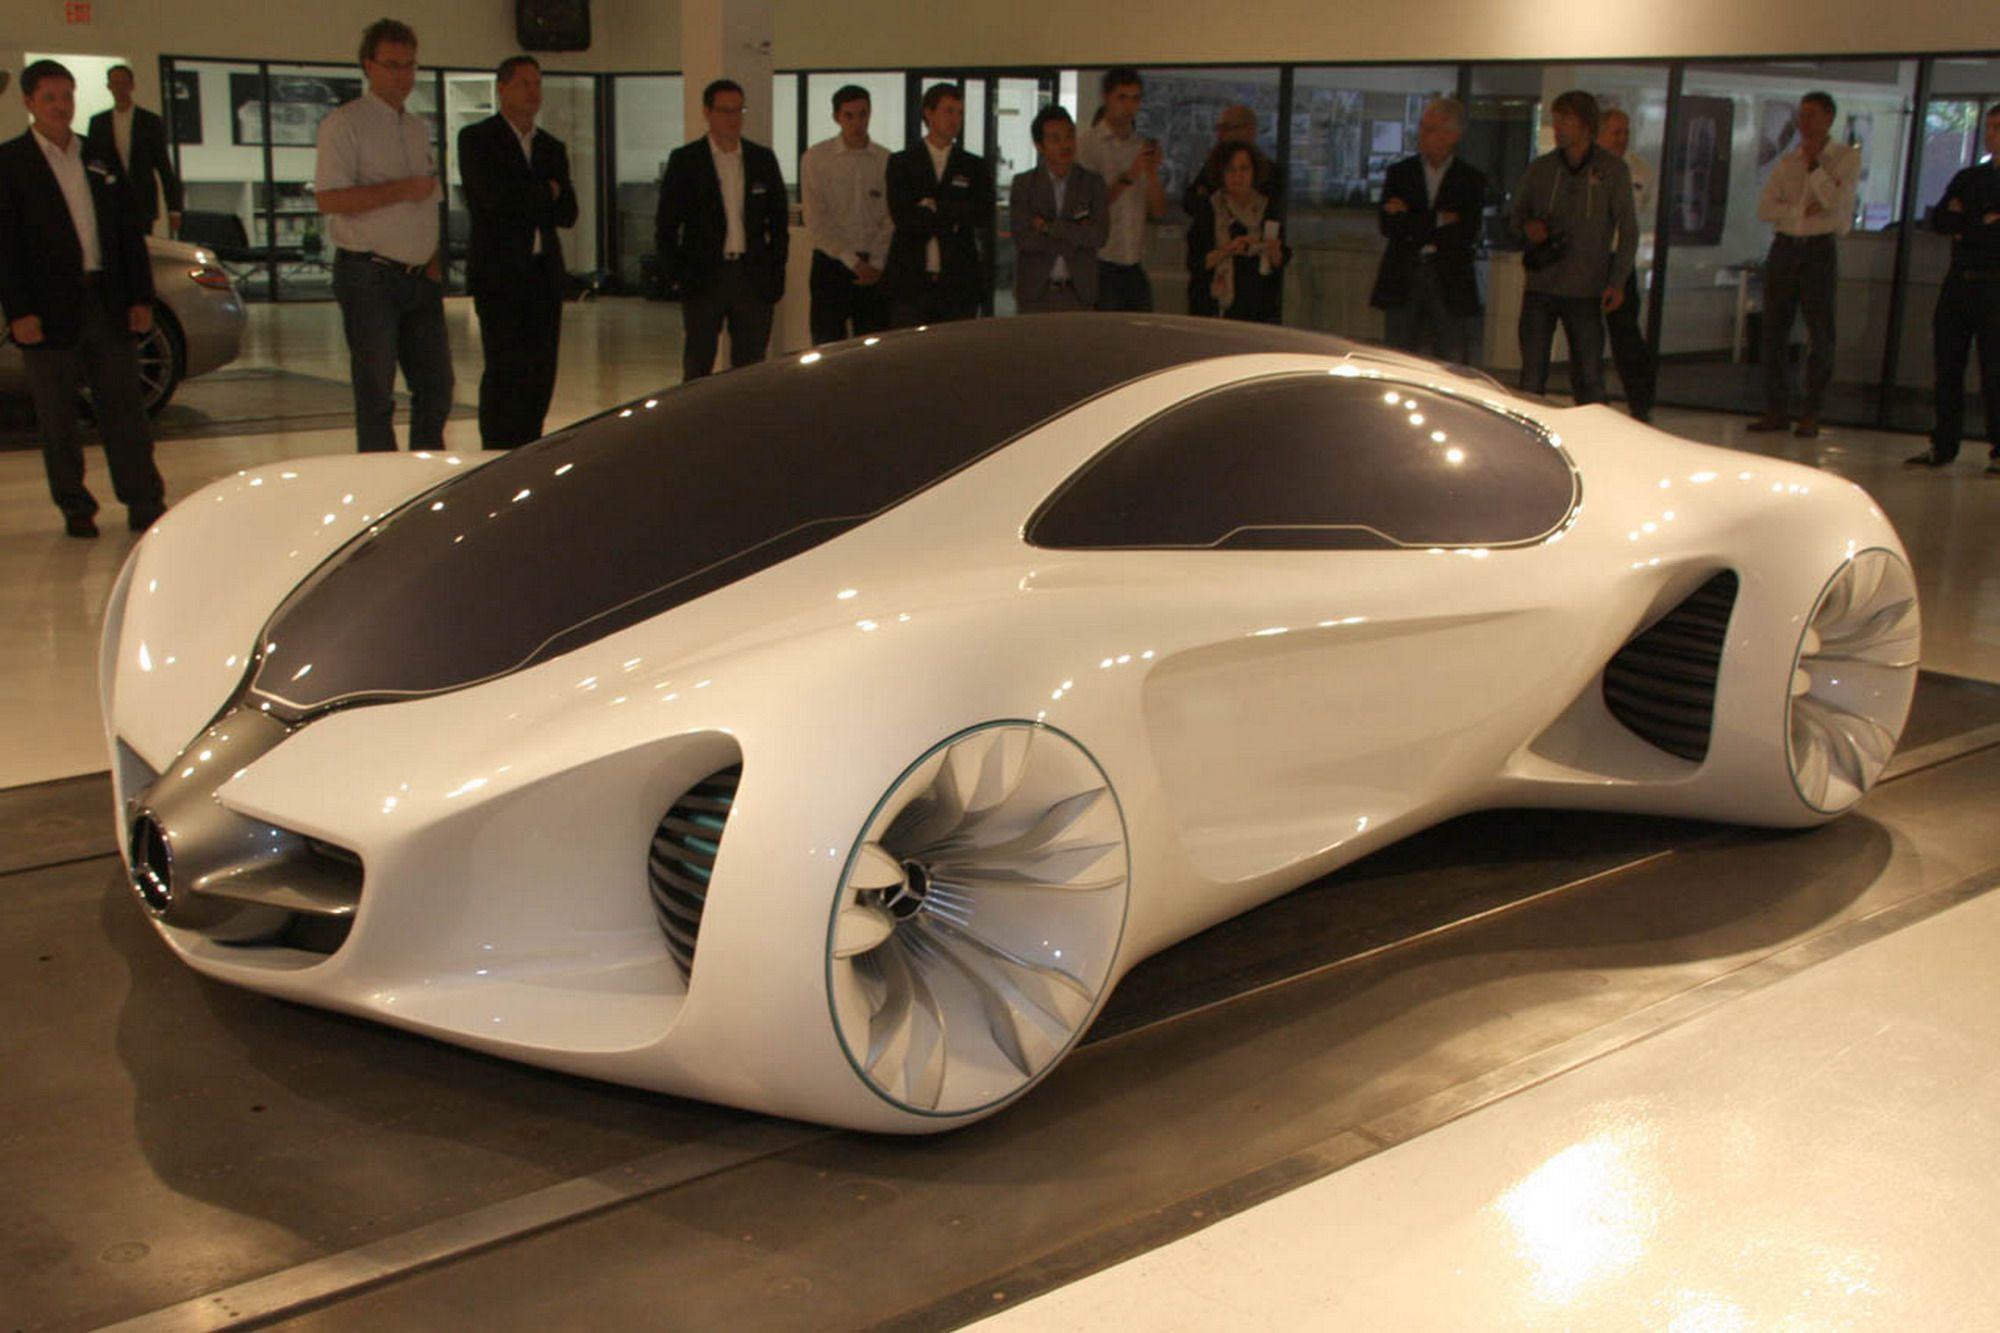 Mercedes benz 2050 biome concept car call me when these hit market imma snatch